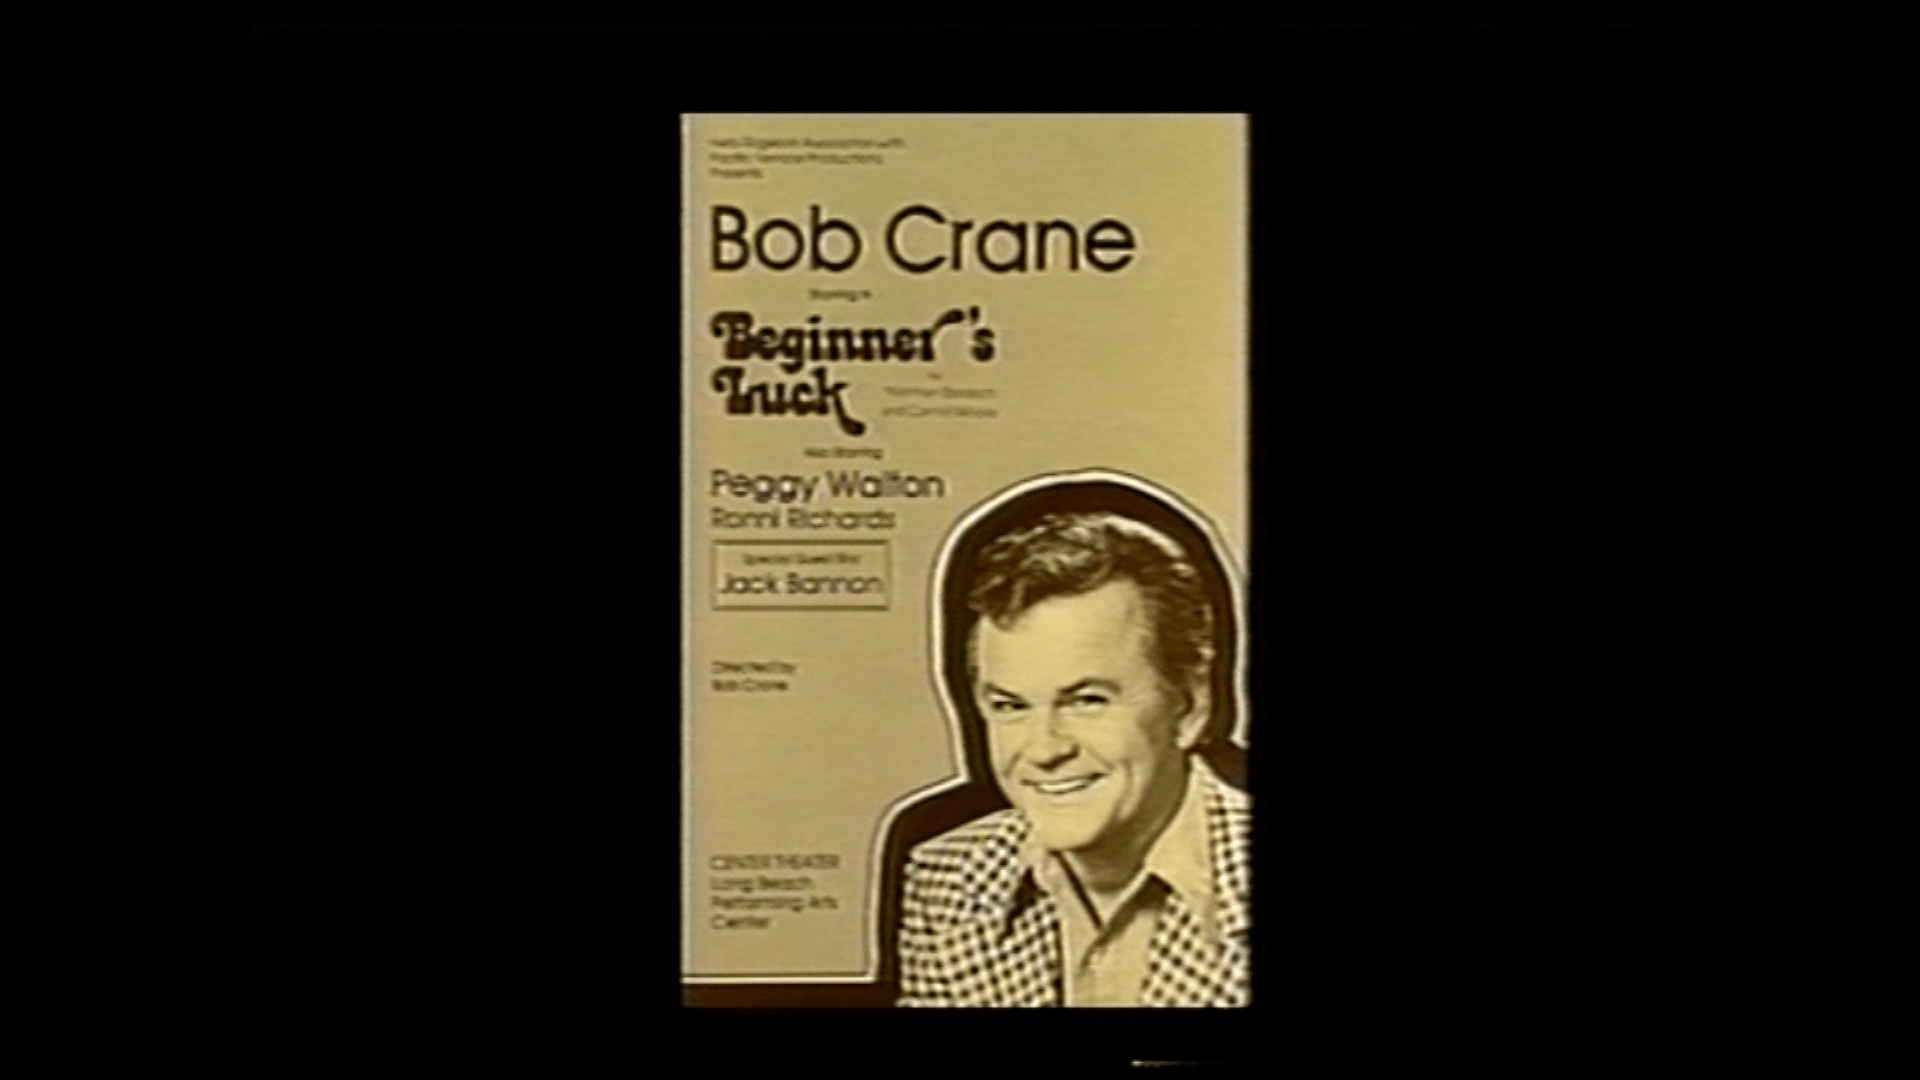 Bob Crane shown on the play pamphlet he was starring in at the time of his murder.